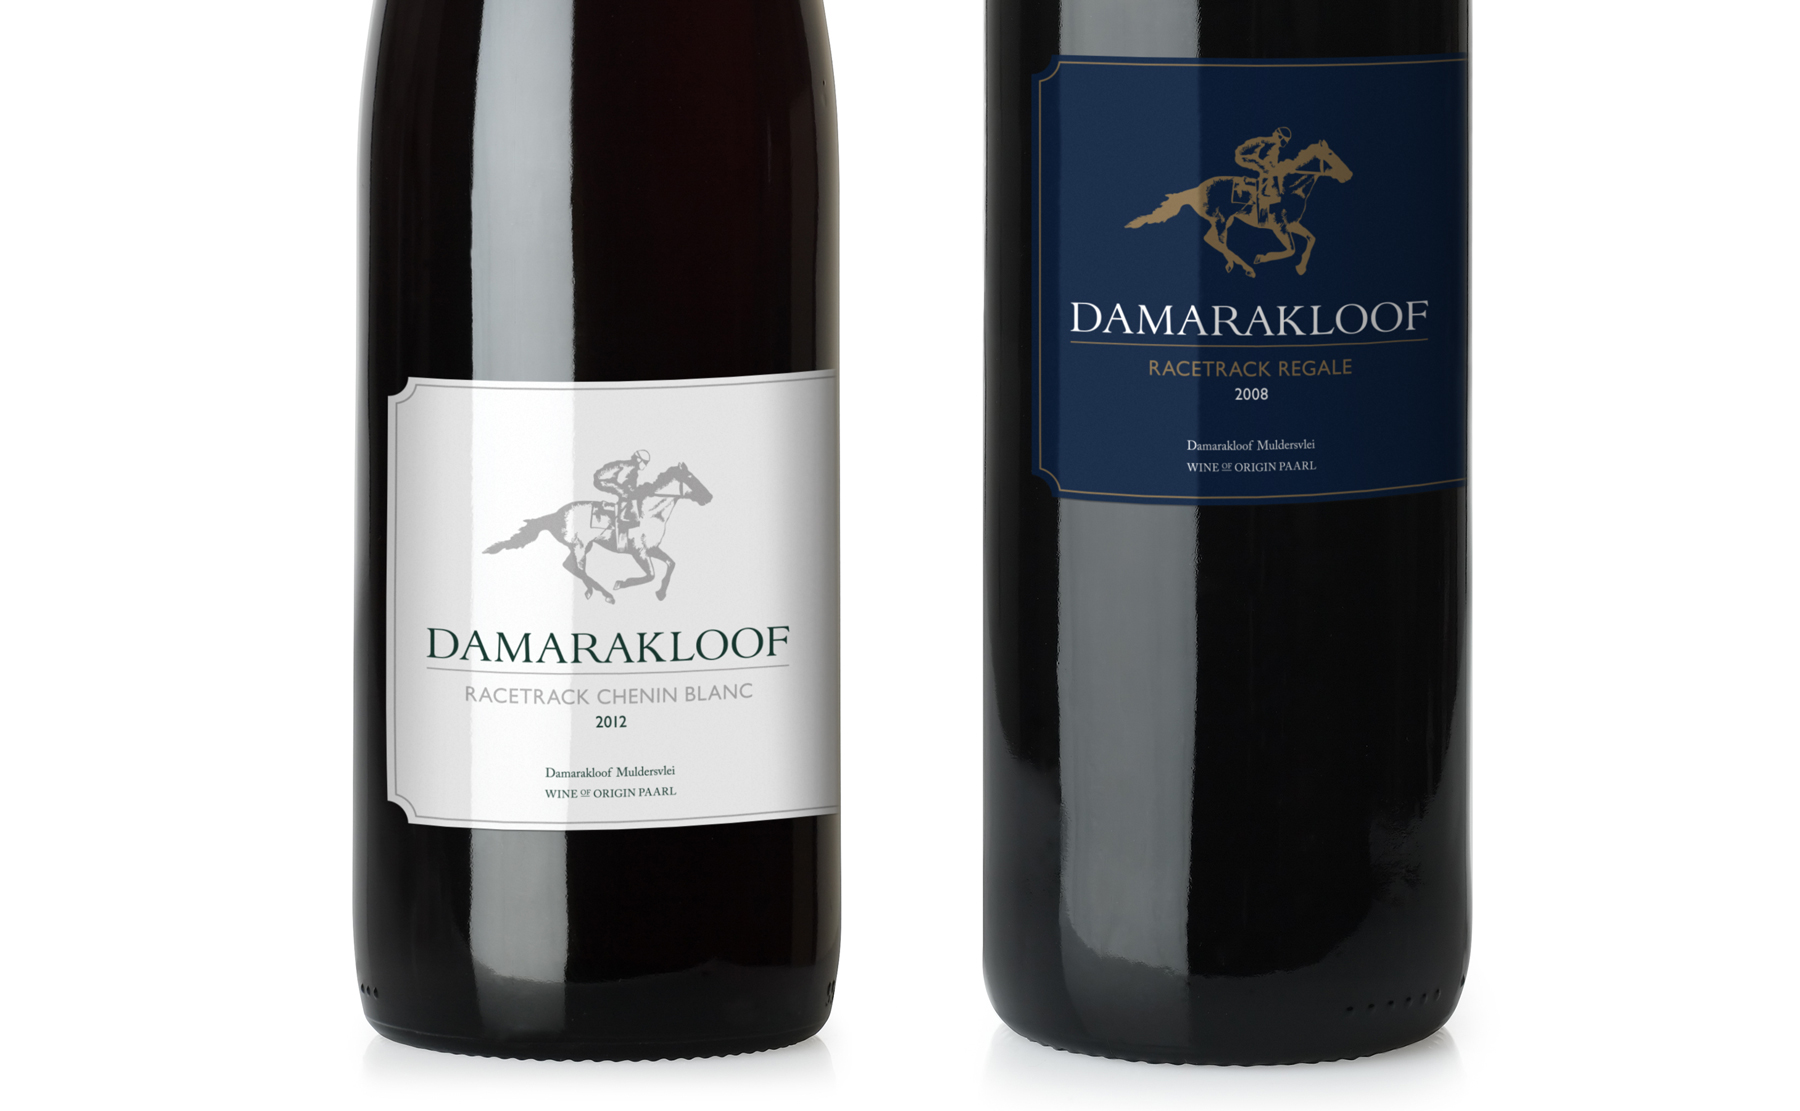 Damarakloof_Labels_02.jpg